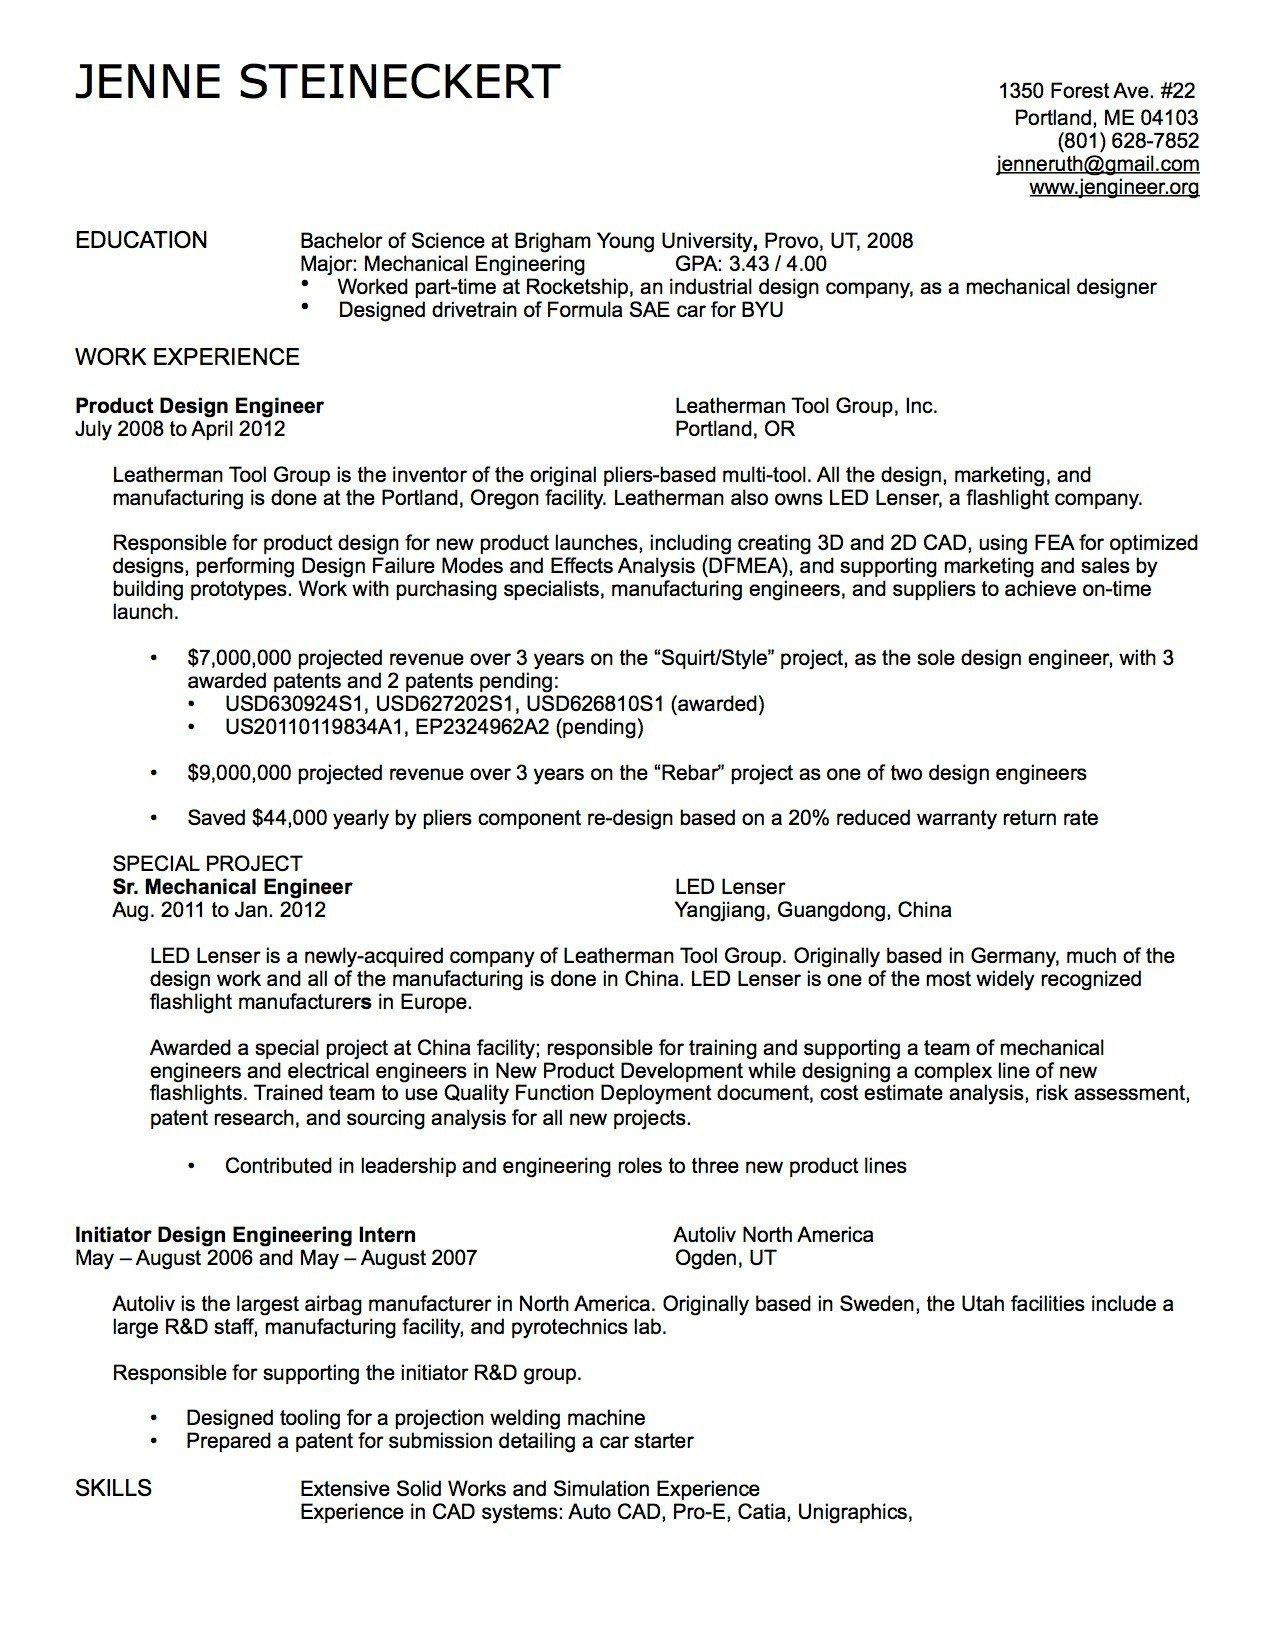 Interests To Put On Resume Luxury New How To Write Hobbies In Resume In 2020 Resume Project Manager Resume Resume Template Word